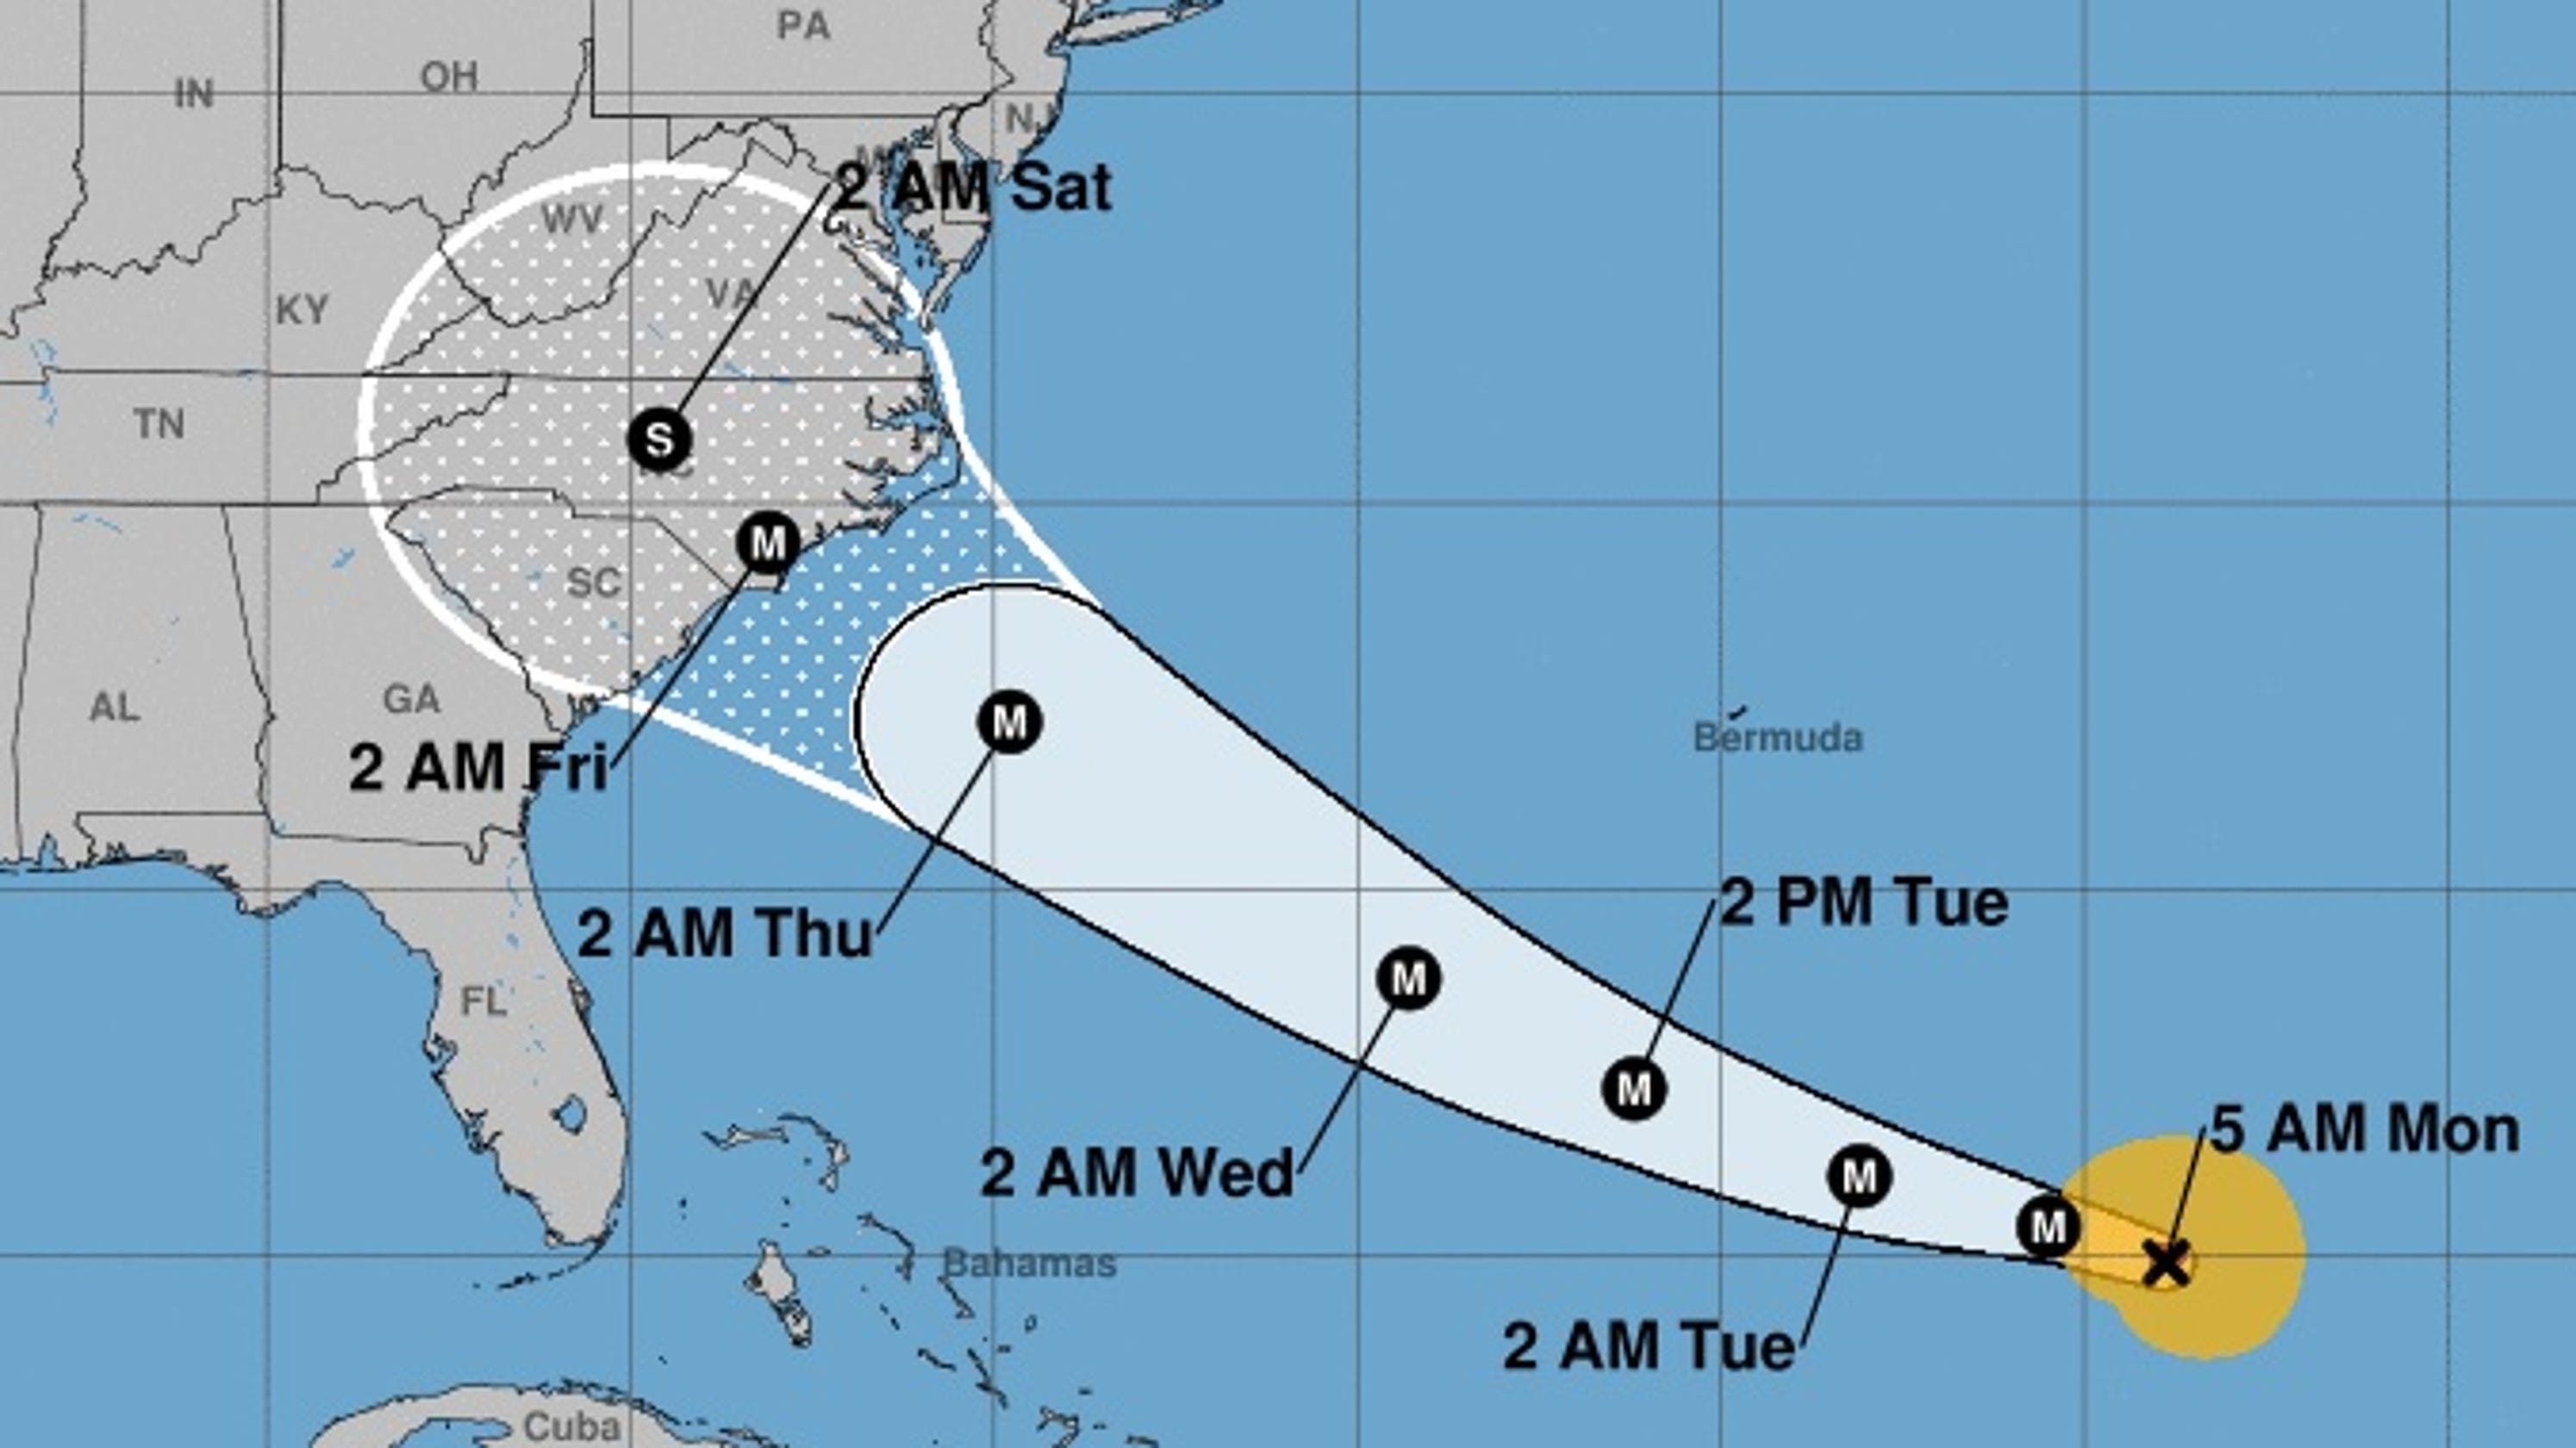 Hurricane Florence: Full list of fee waivers at U.S. airlines